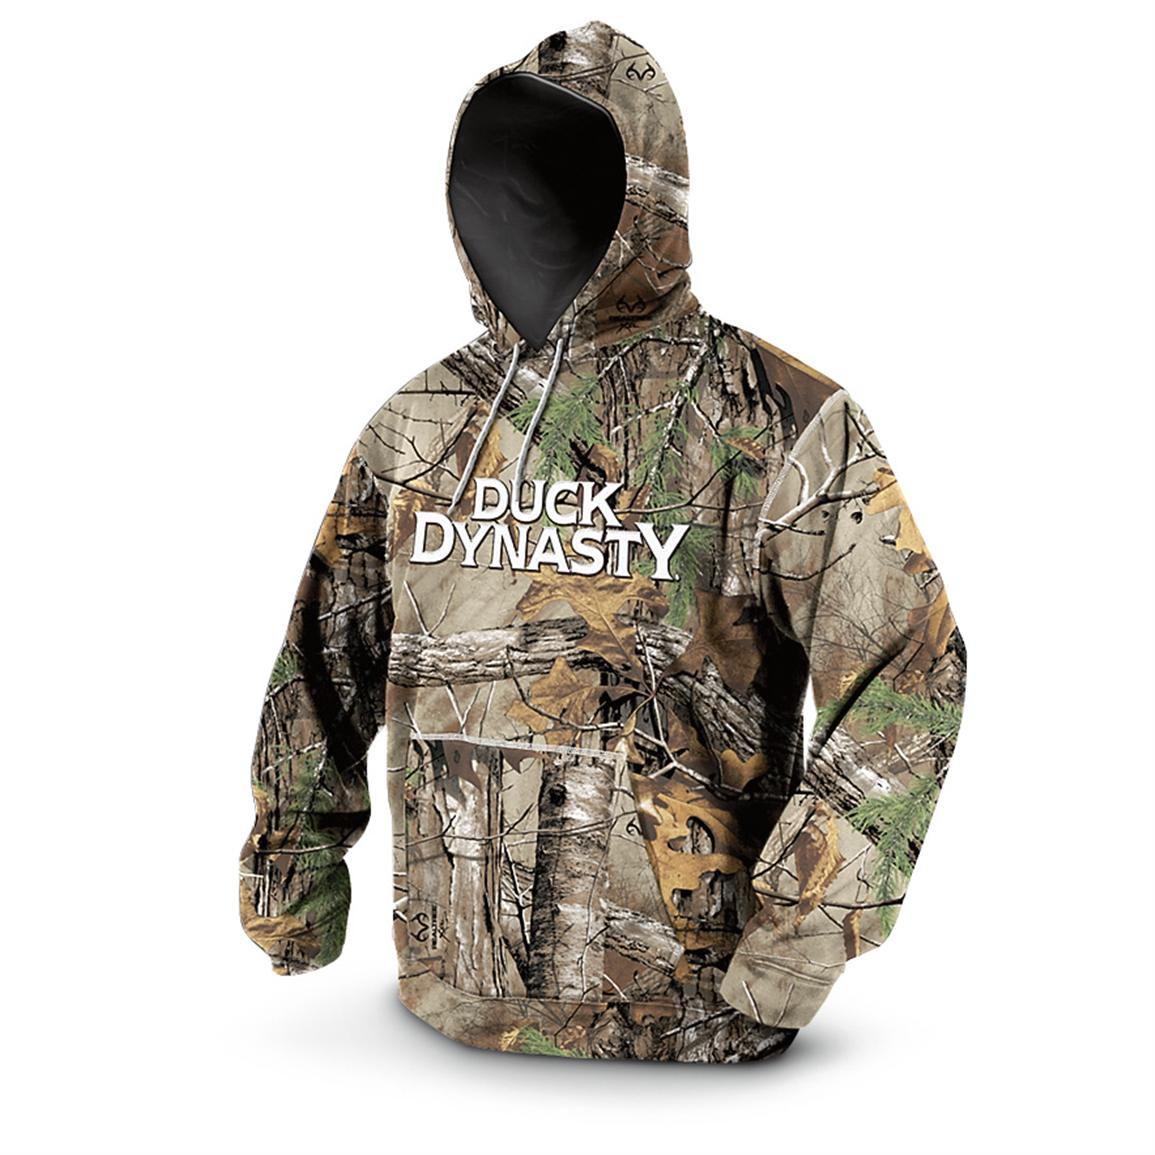 Duck Dynasty® Pullover Hoodie, Realtree Xtra®